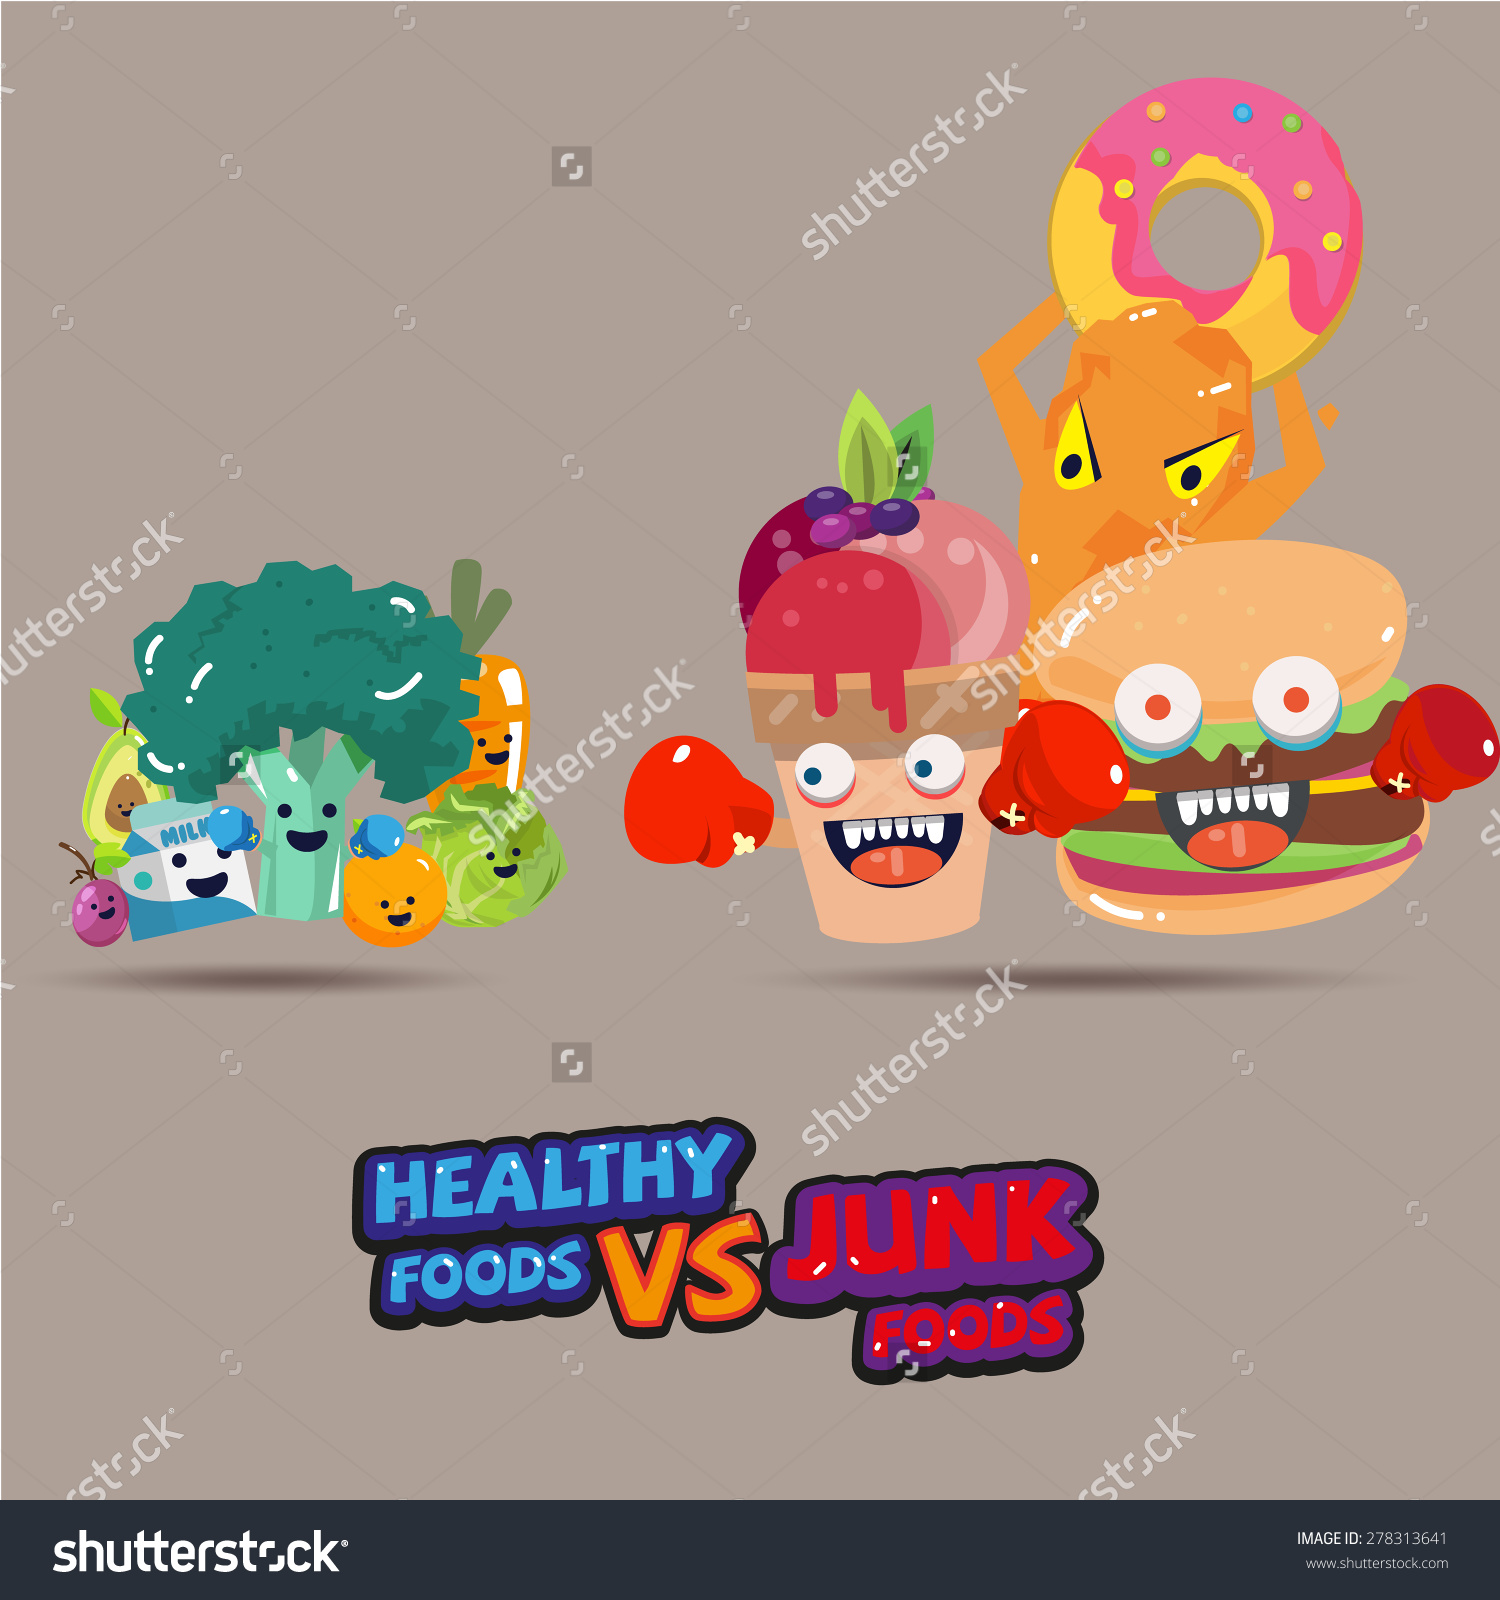 food vs food clipart #14